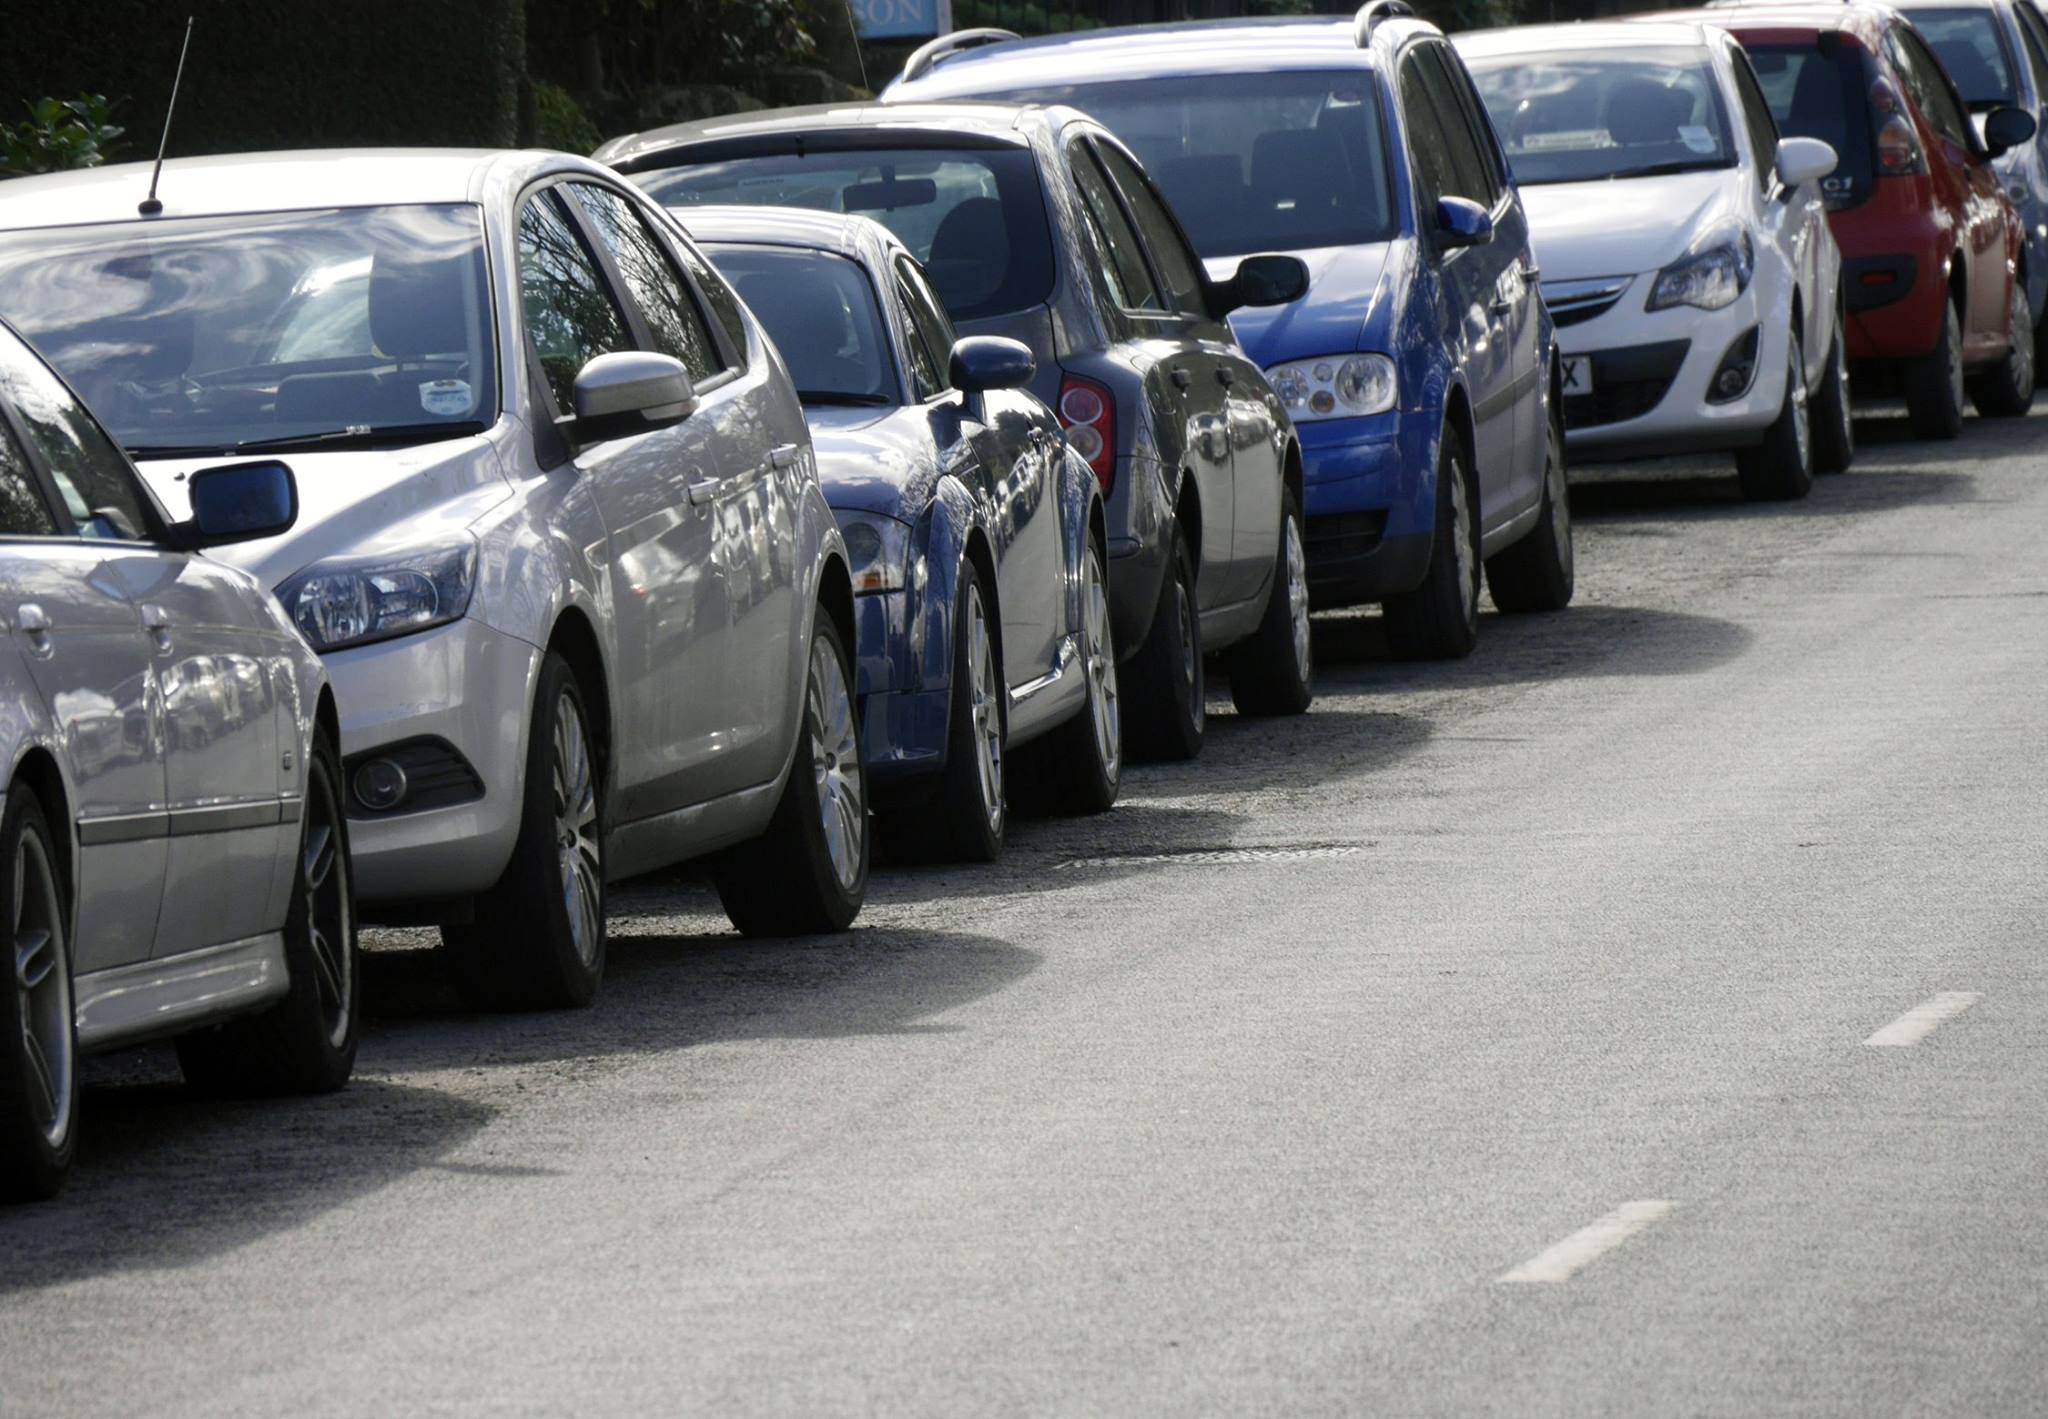 Sensible solutions proposed to tackle parking problems